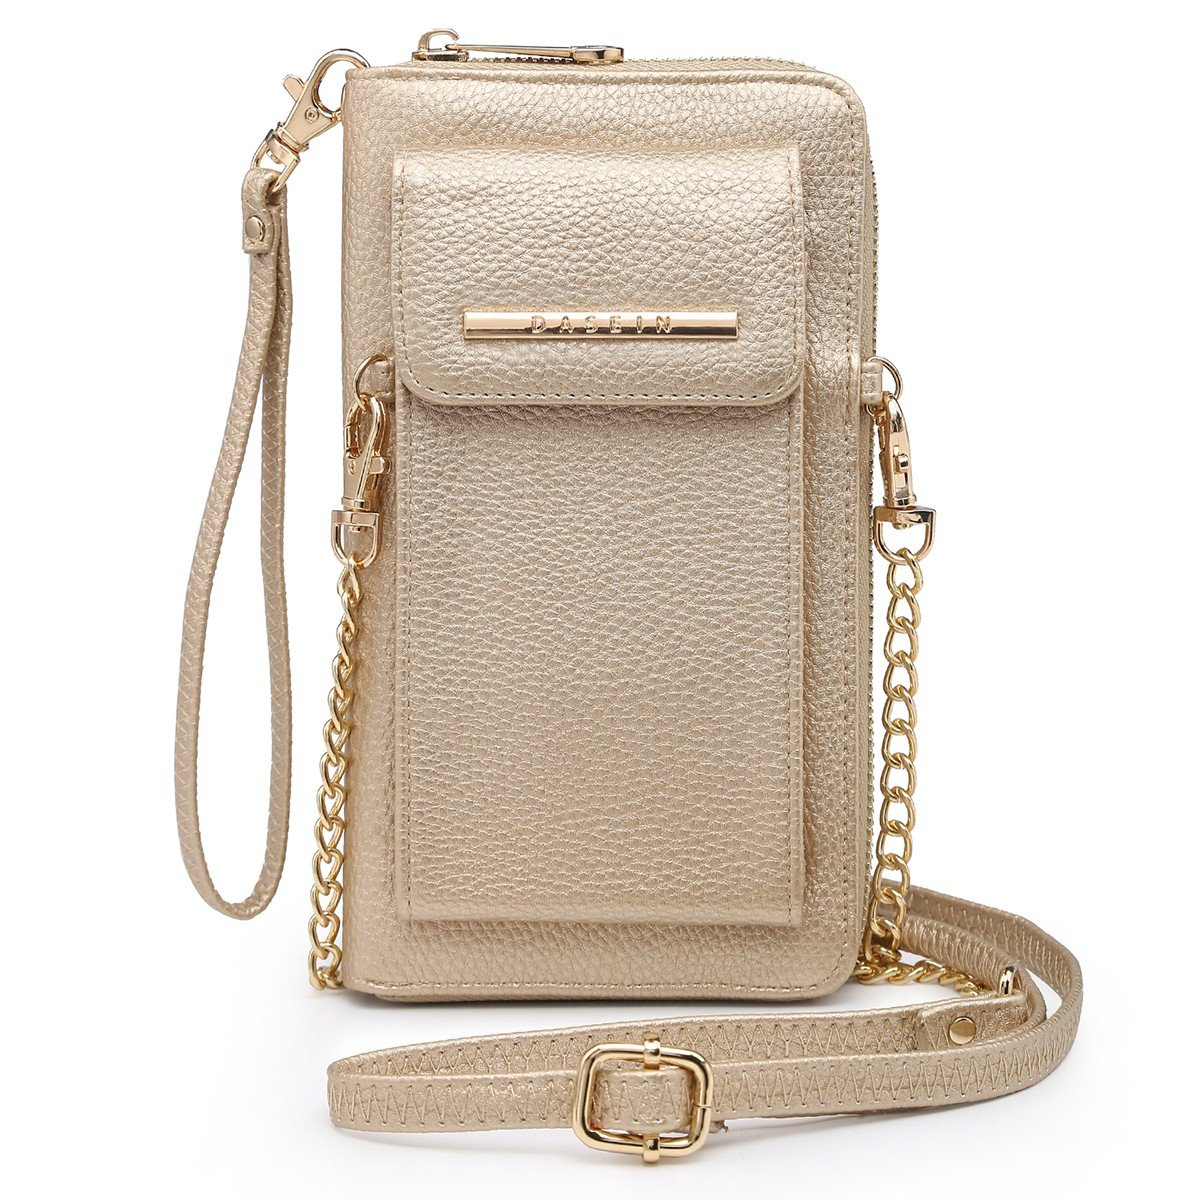 Fashion Small Size Cellphone Wristlet Crossbody Bag